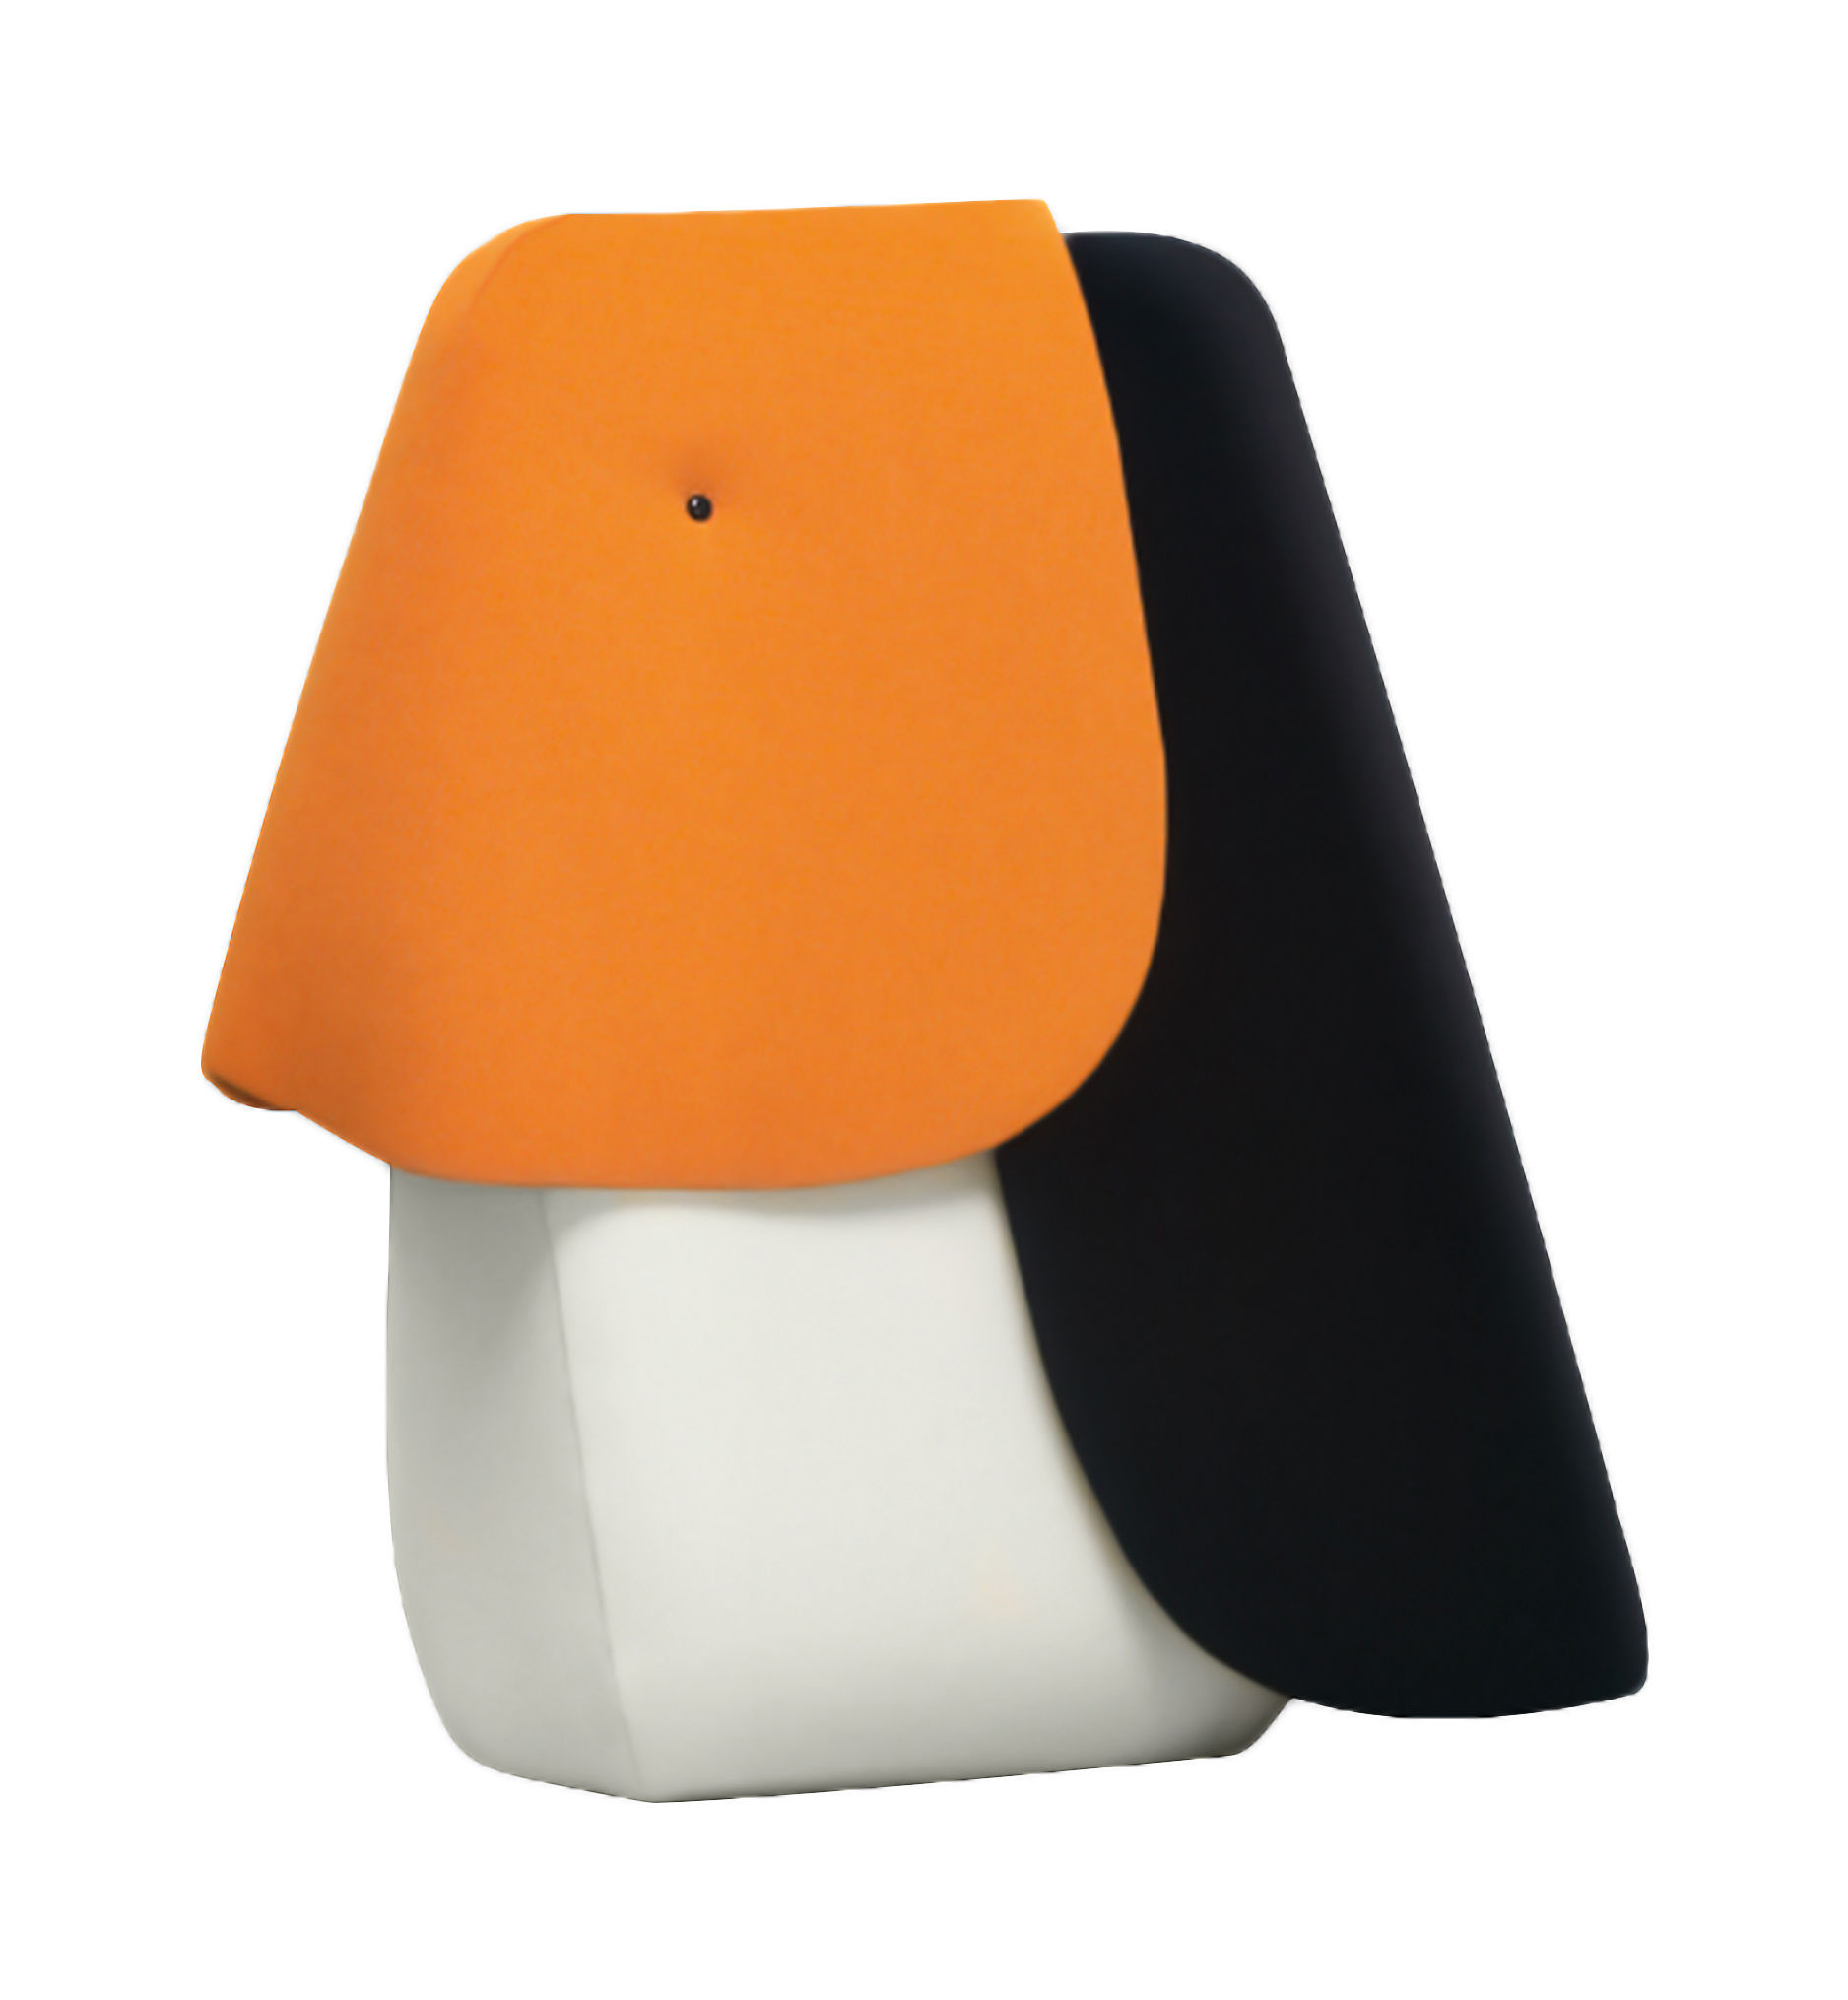 Decoration - Children's Home Accessories - Toucan Mini Cushion - W 14 x H 33 cm by Elements Optimal - Orange, Black, White / Toucan - Foam, Kvadrat fabric